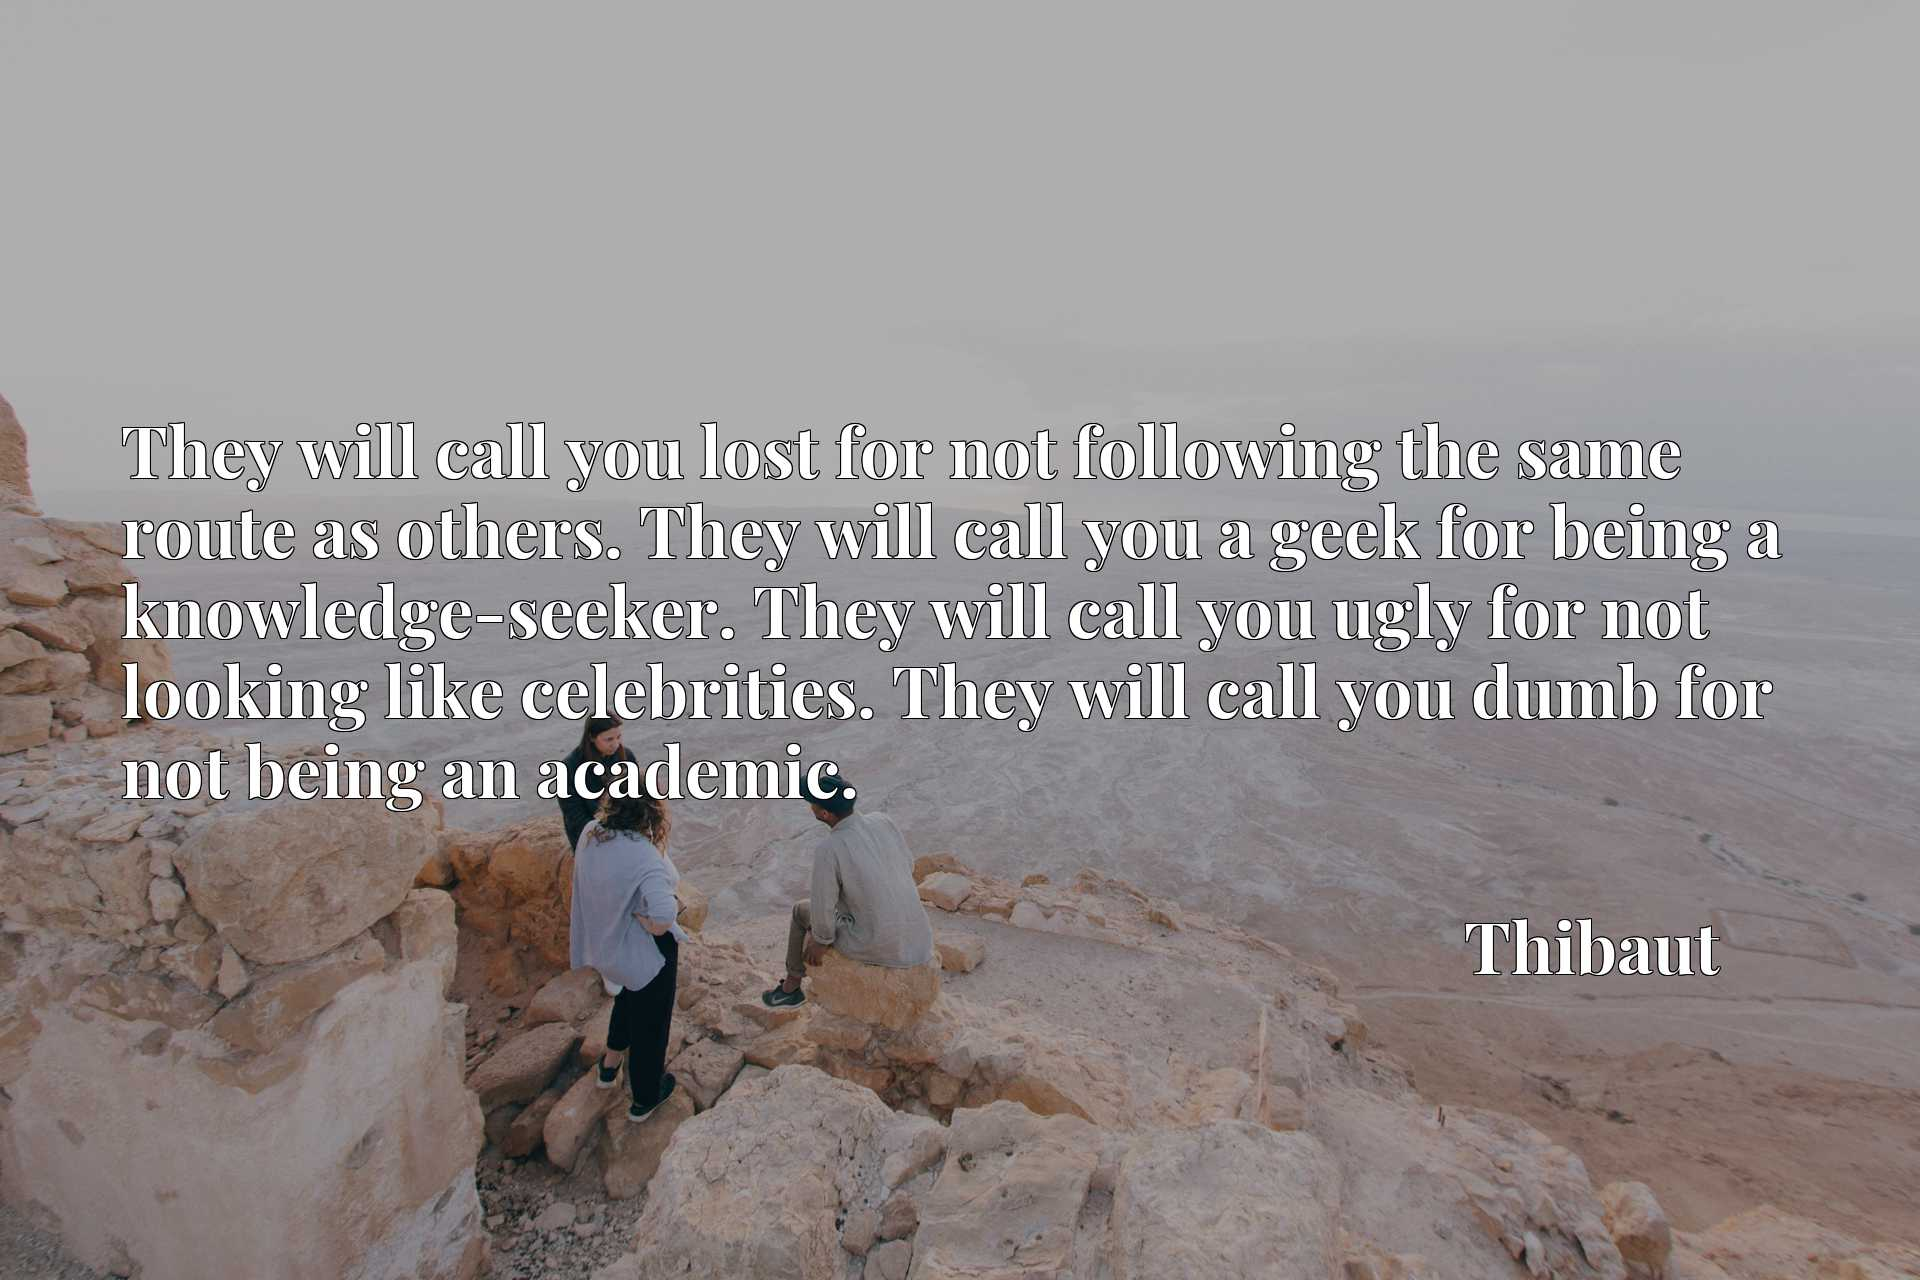 They will call you lost for not following the same route as others. They will call you a geek for being a knowledge-seeker. They will call you ugly for not looking like celebrities. They will call you dumb for not being an academic.